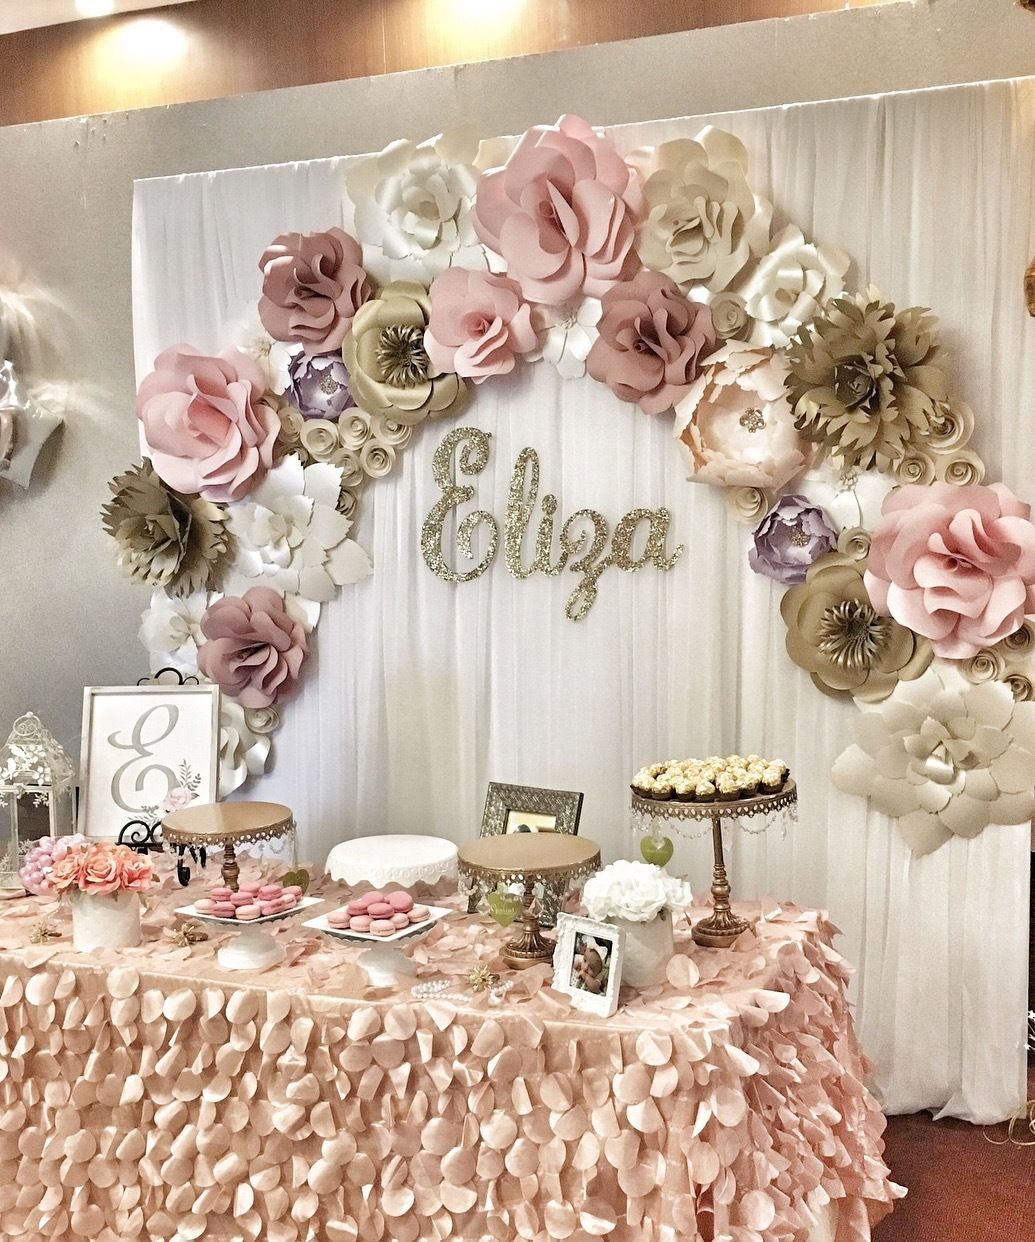 Wall Decorations Sweet 16